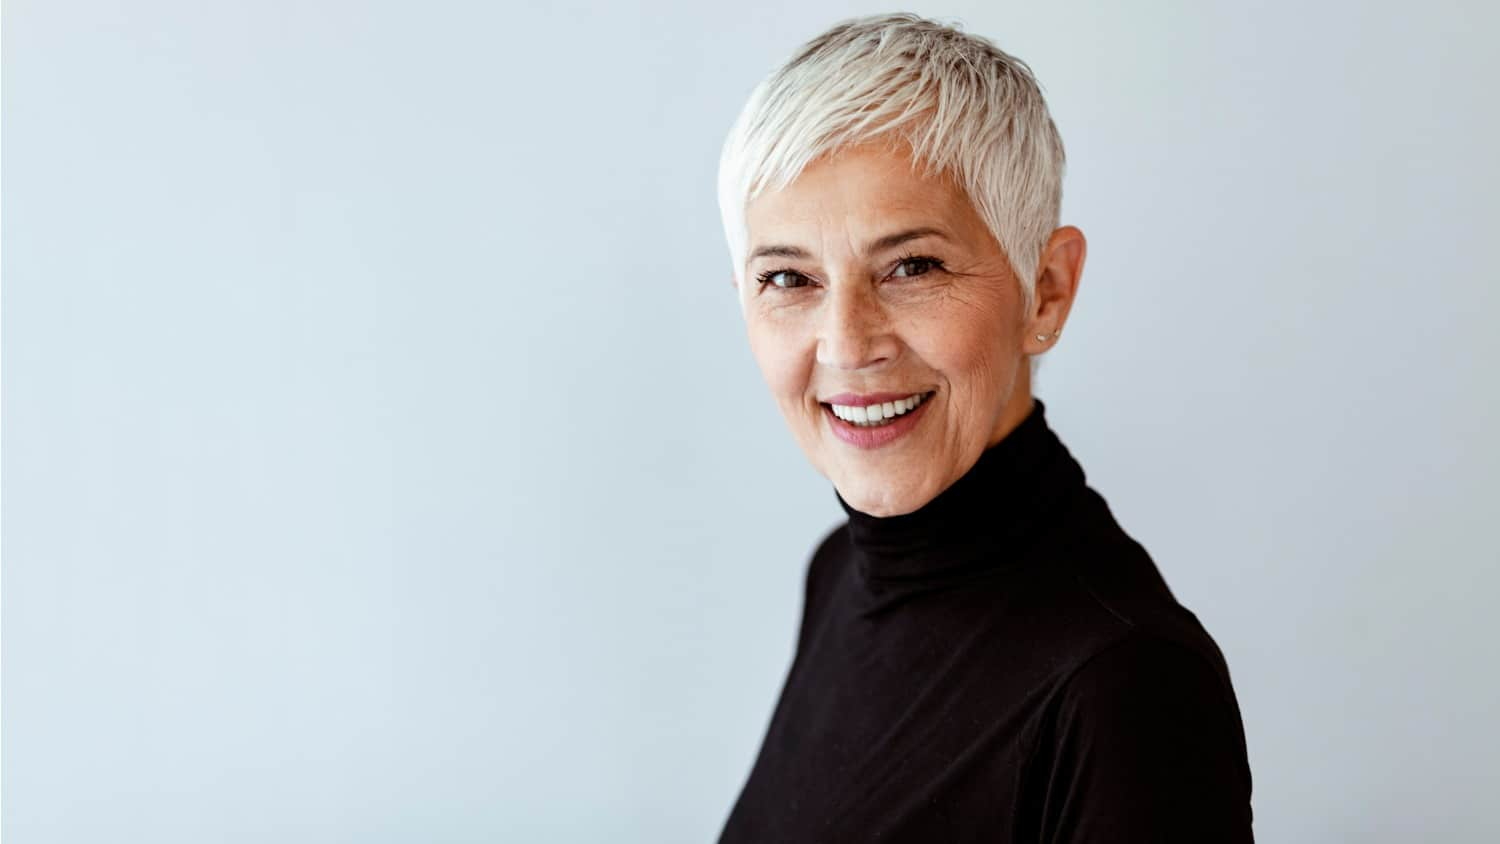 Pixie Haircuts For Women Over 60 Who Prefer Short Hair Sixty And Me